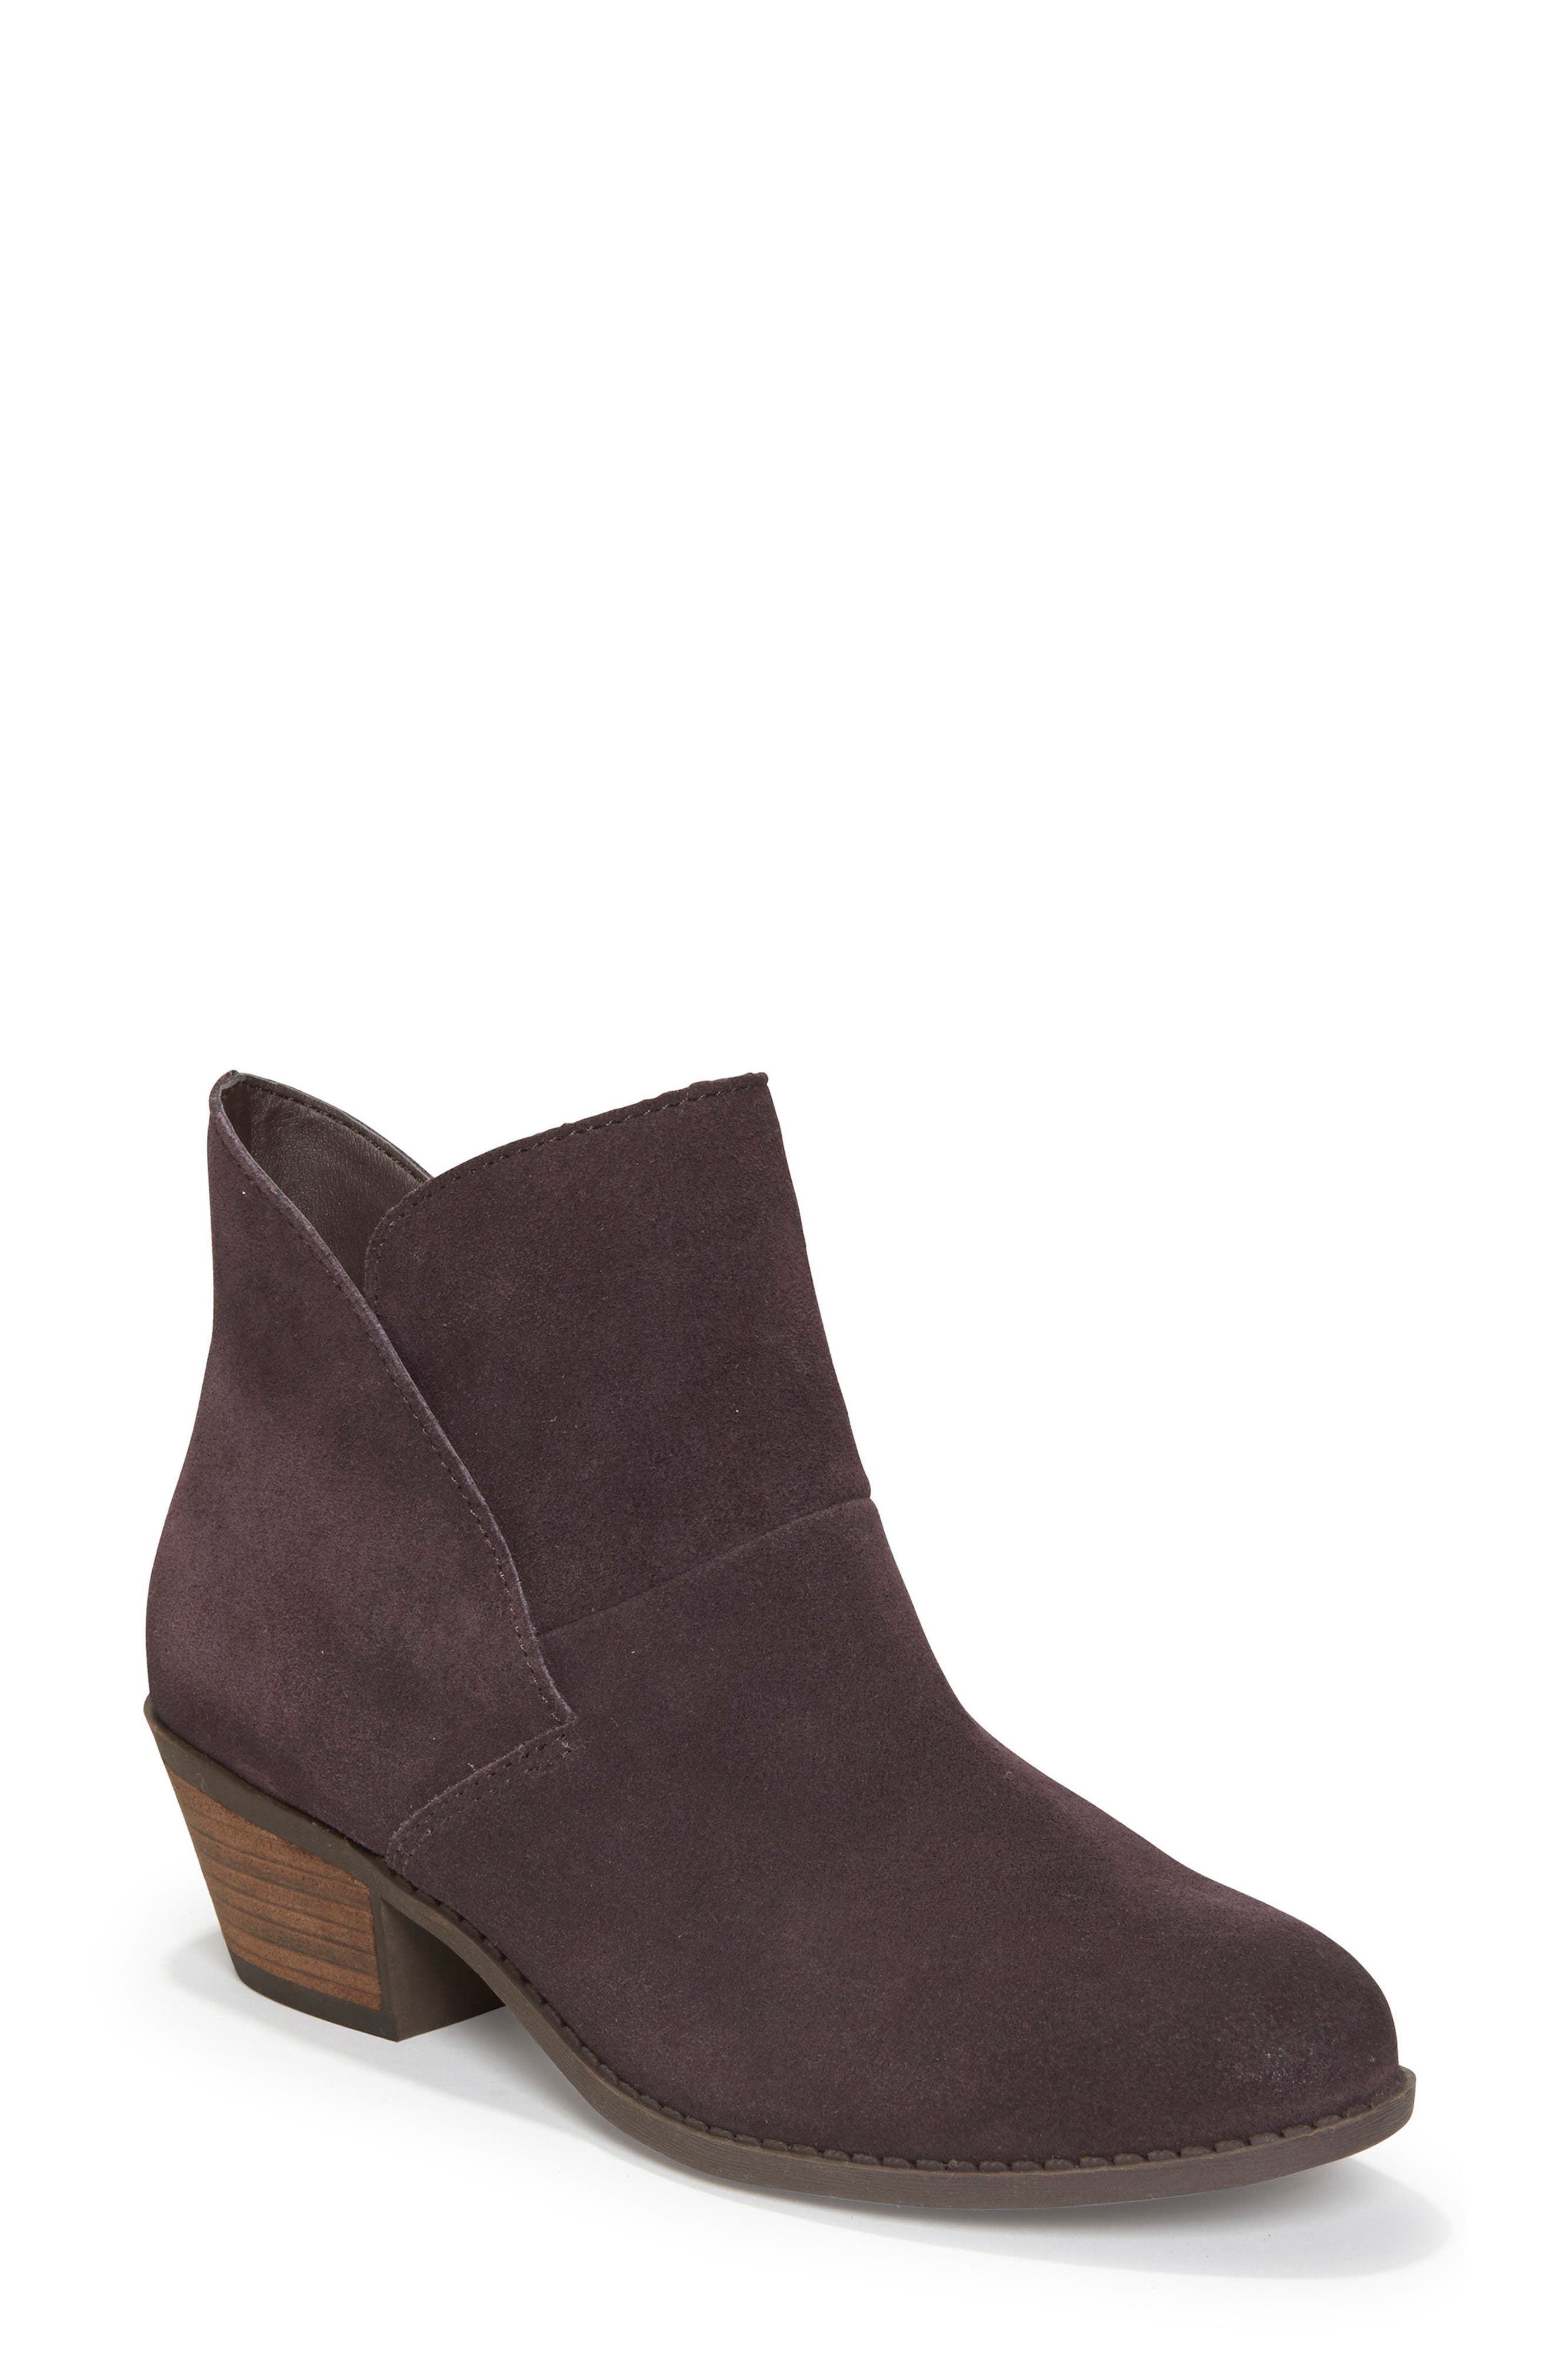 Zena Ankle Boot,                         Main,                         color, Dark Ruby Suede